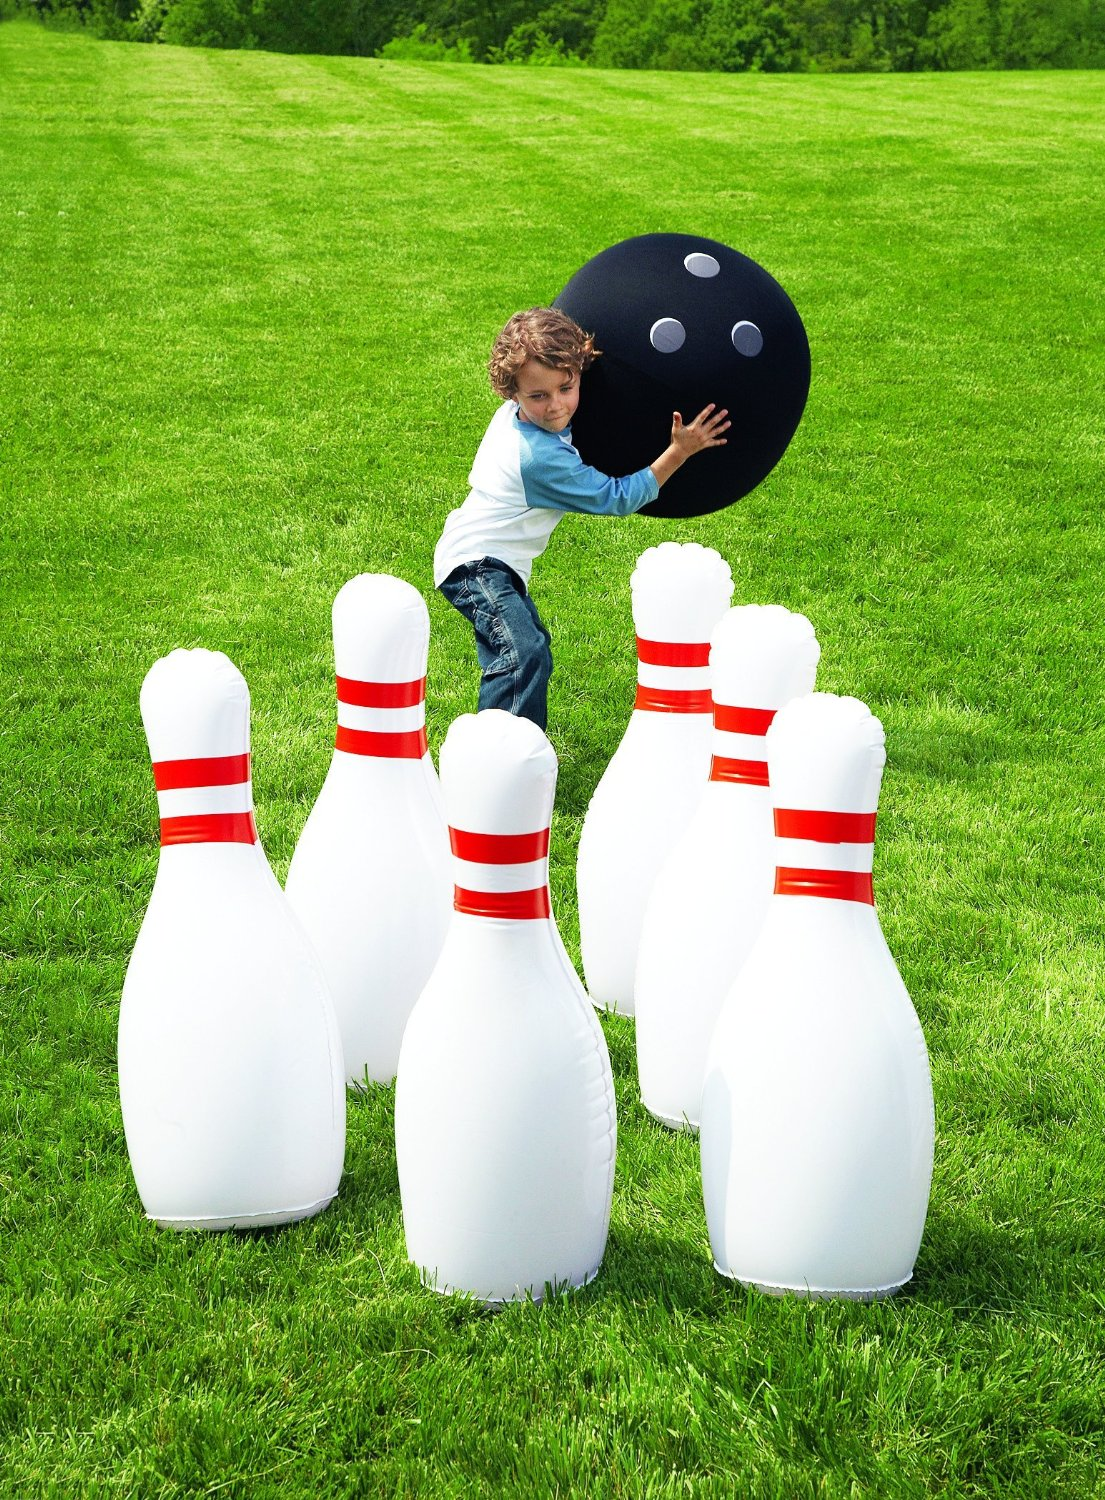 Inflatable Giant Bowling